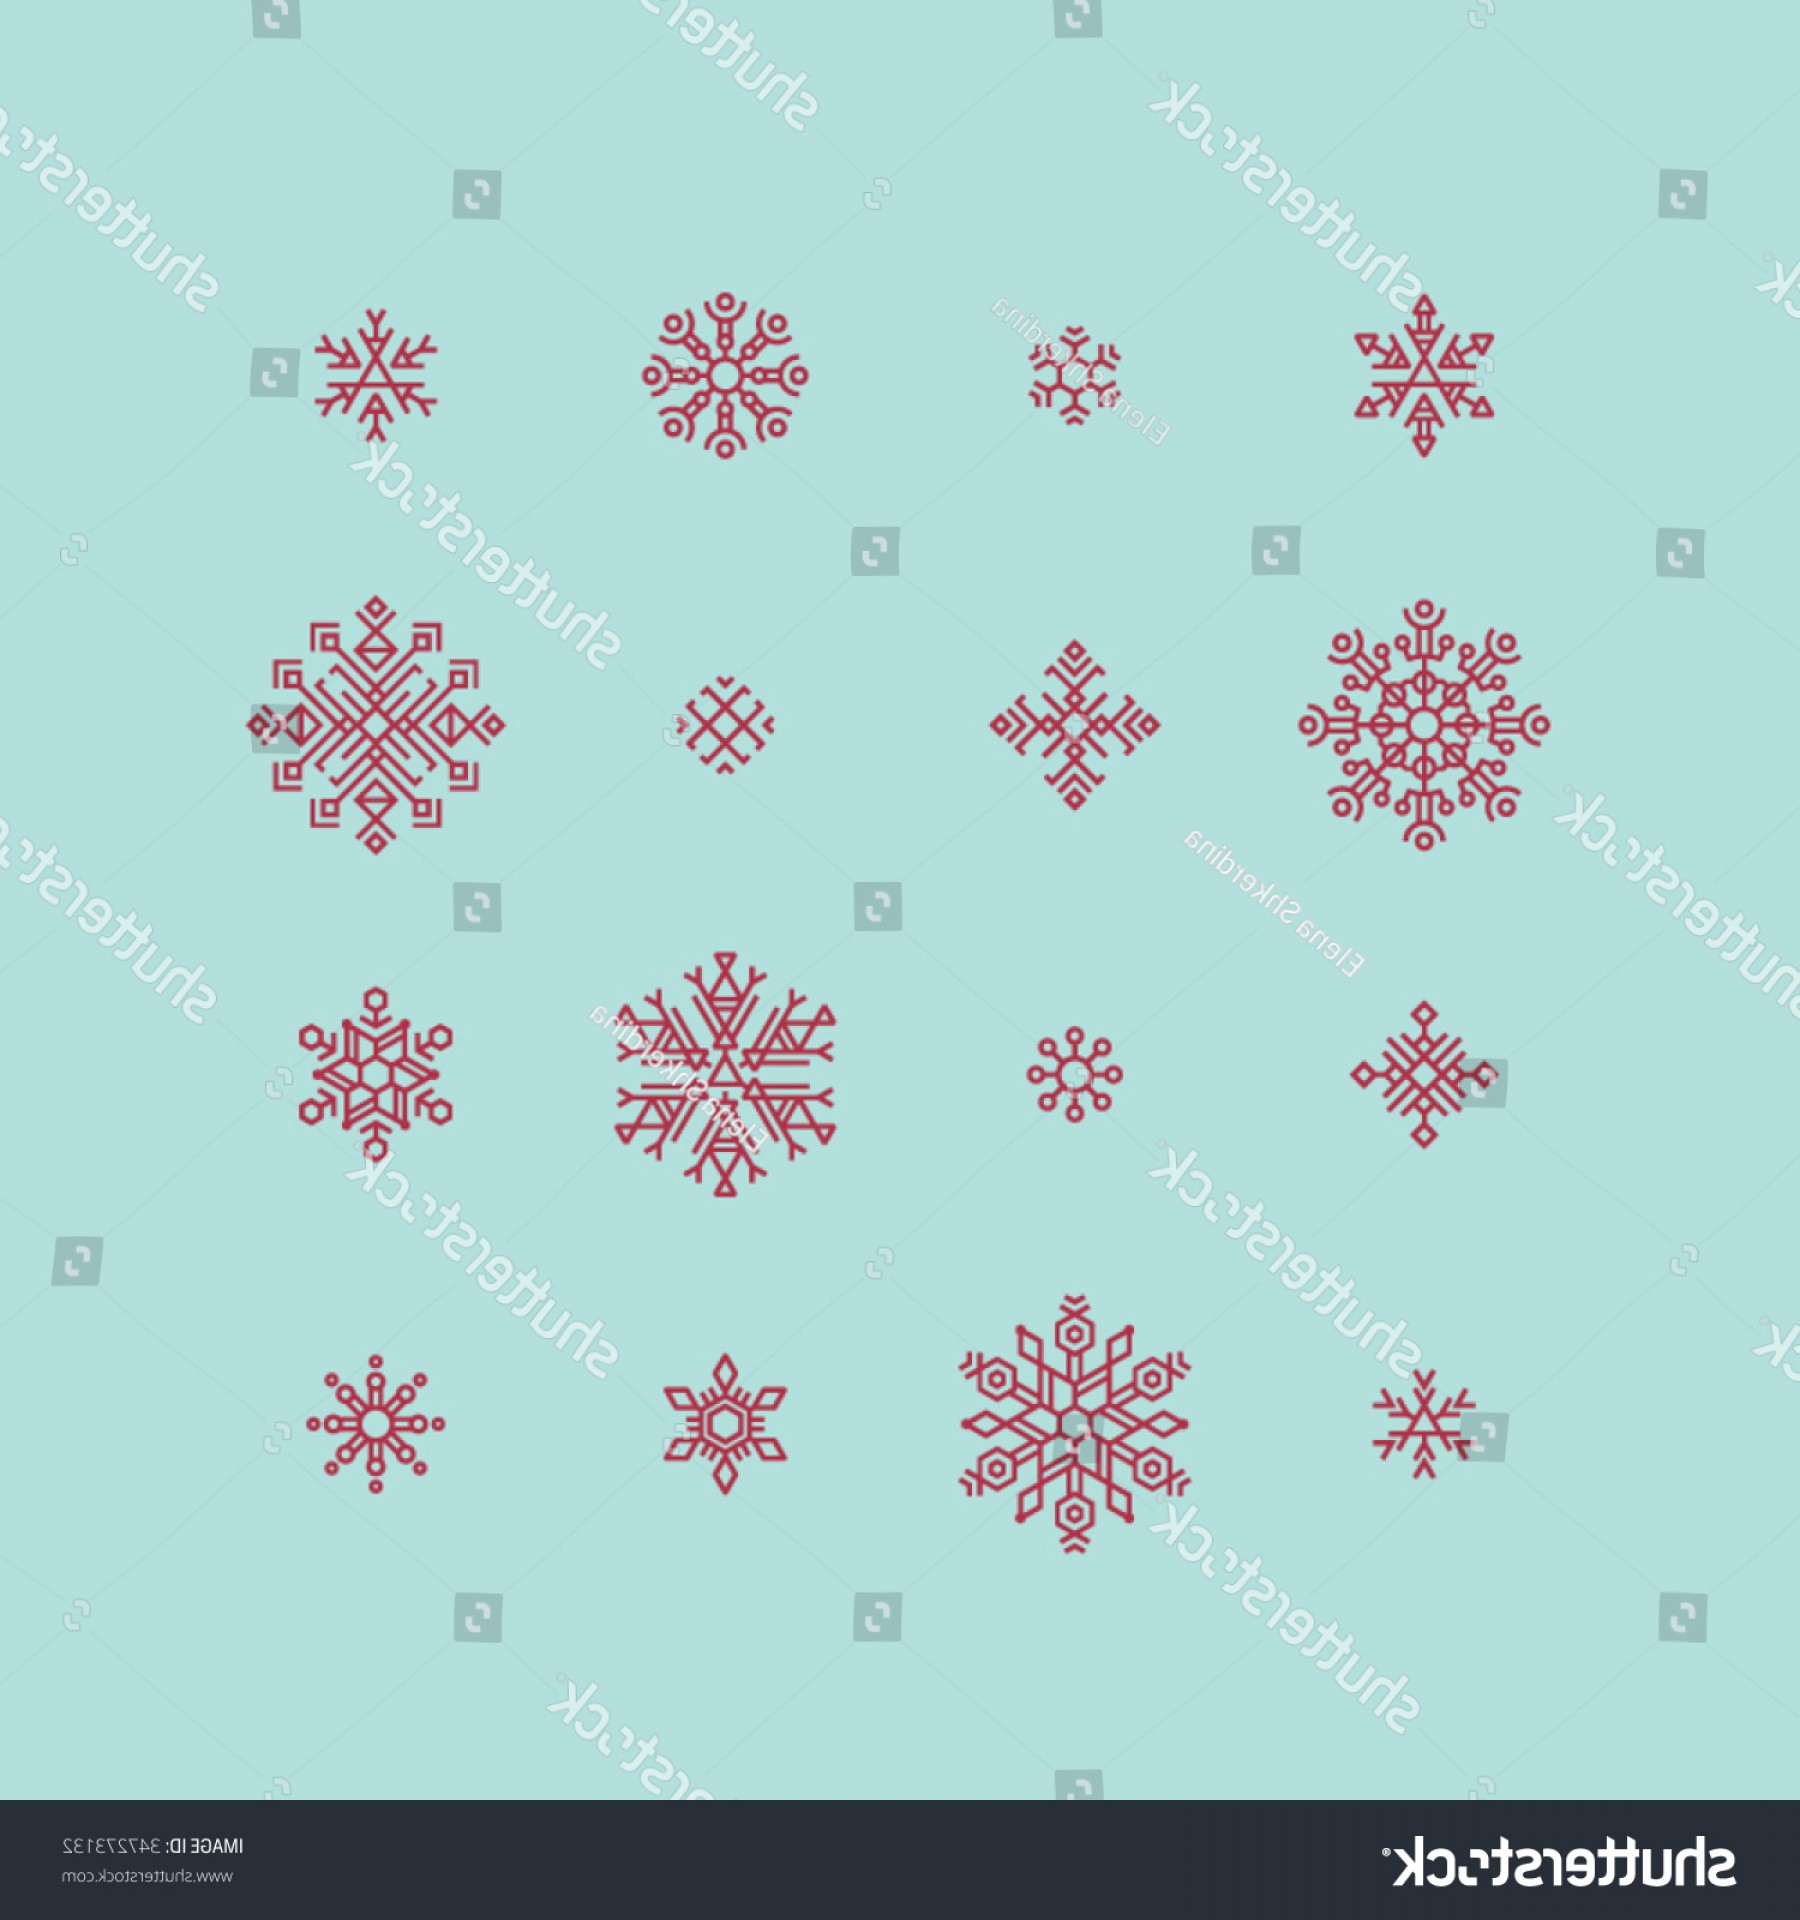 Vector-Based Christmas: Set Christmas Snowflakes Based On Basic